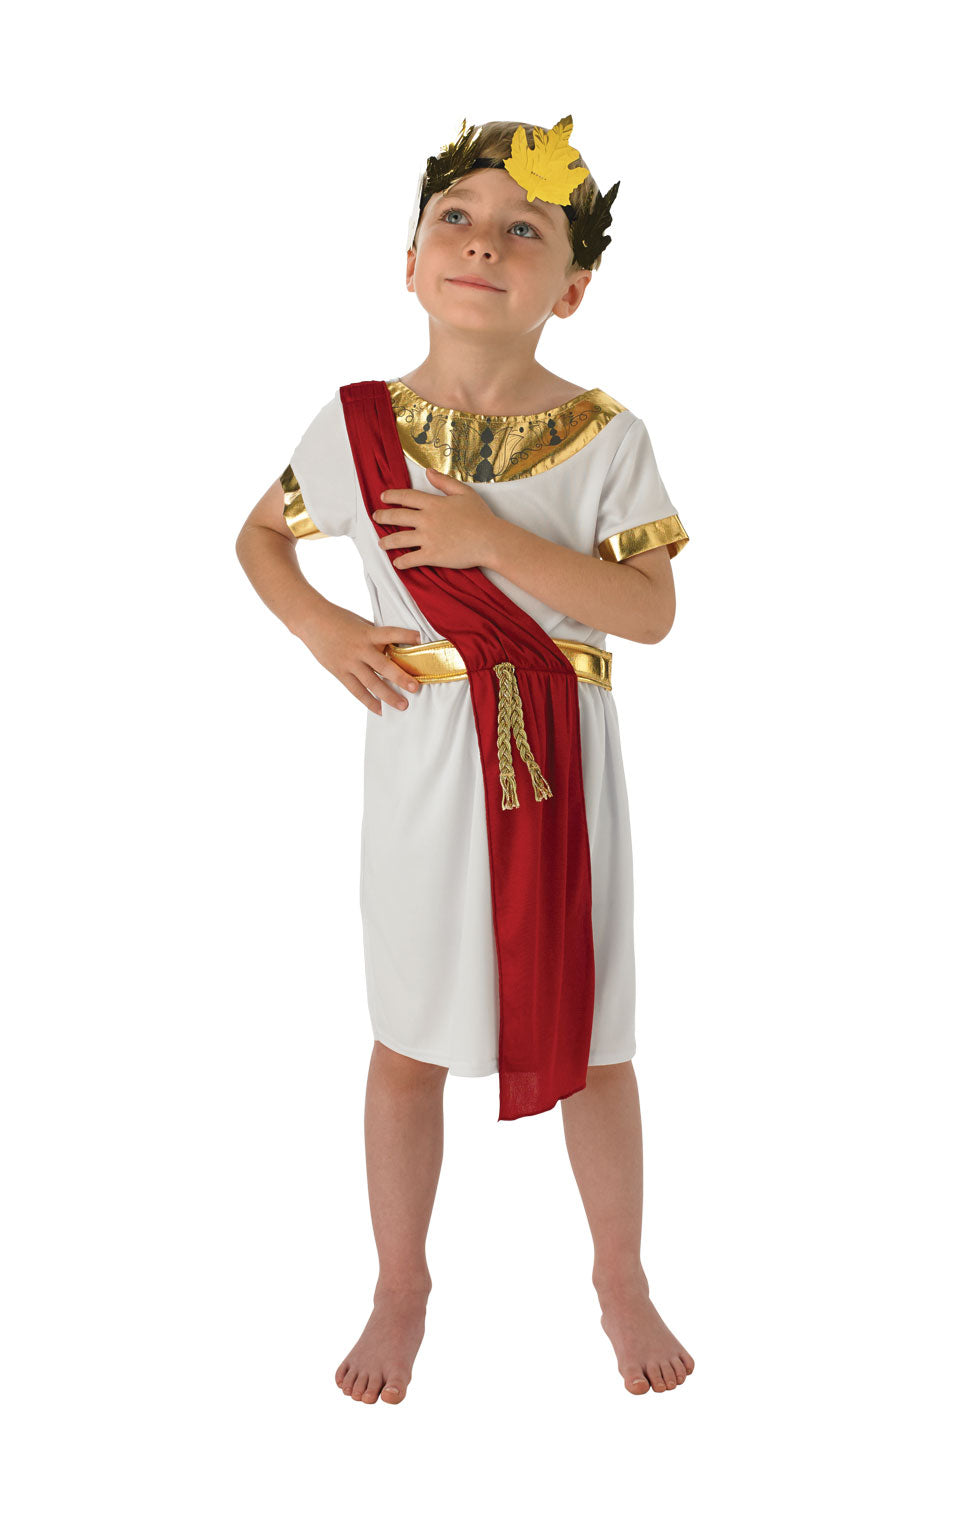 ROMAN BOY Chilrens Fancy Dress Costume